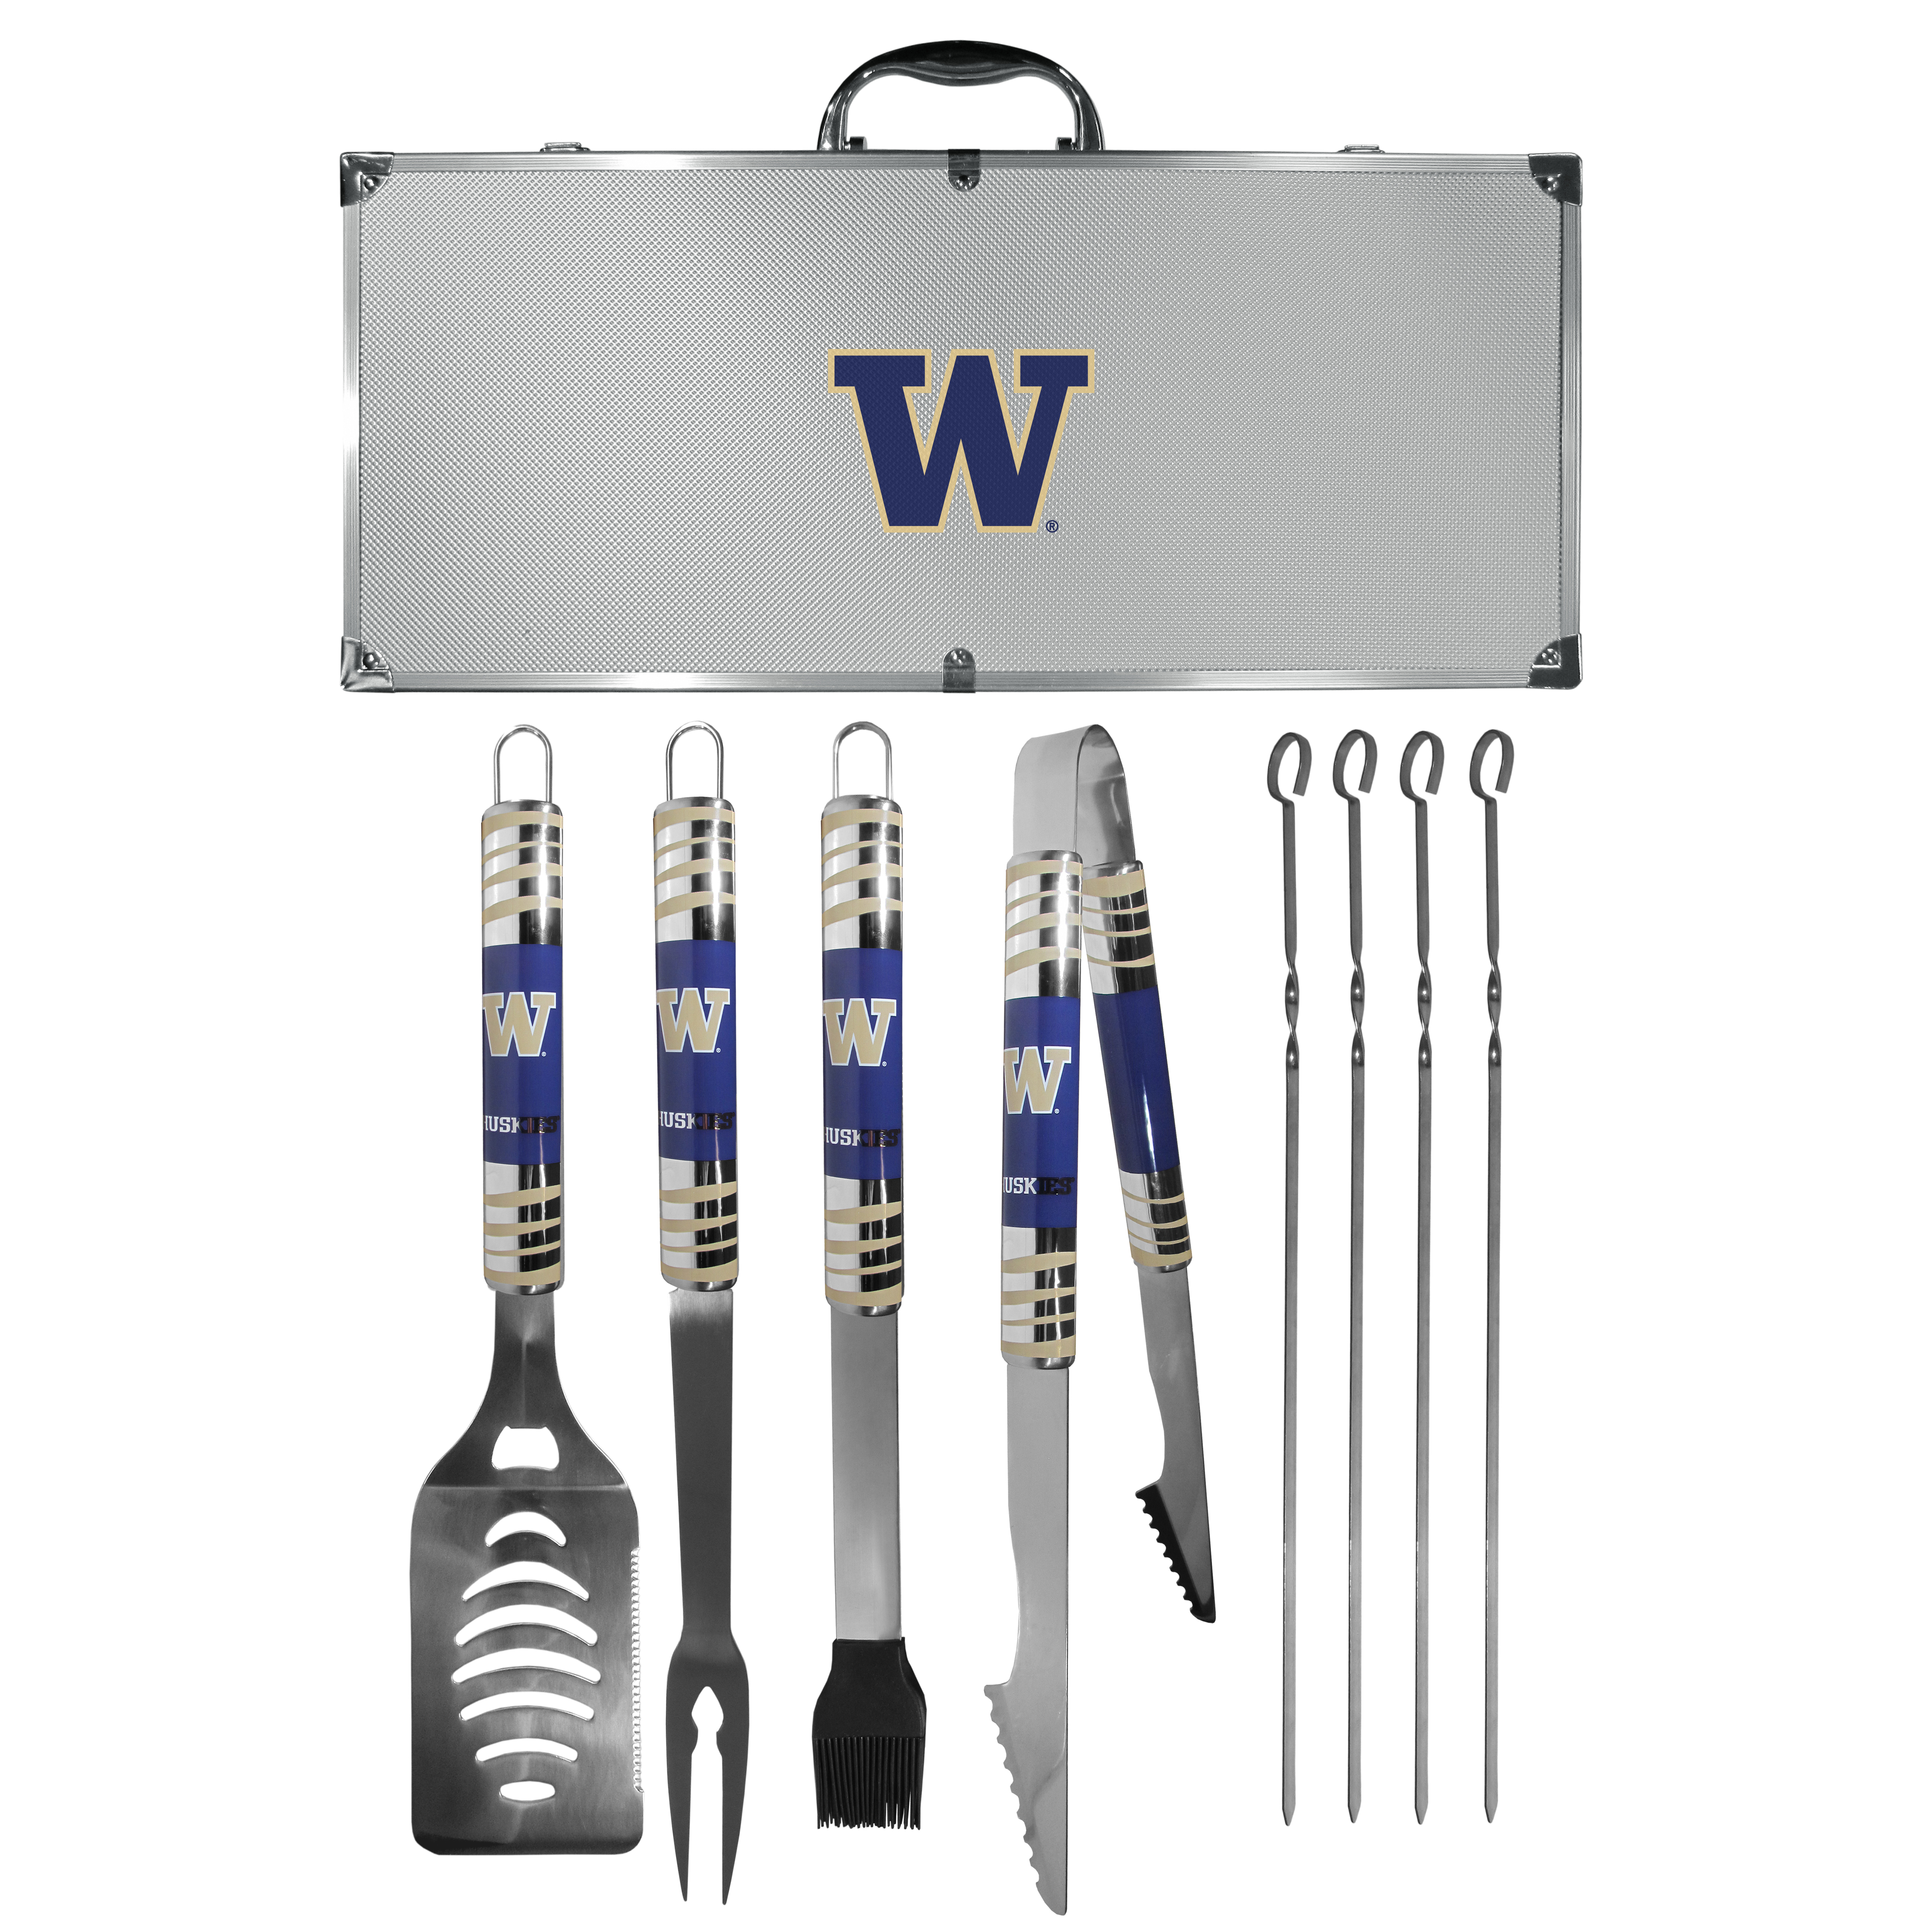 Washington Huskies 8 pc Tailgater BBQ Set - This is the ultimate Washington Huskies tailgate accessory! The high quality, 420 grade stainless steel tools are durable and well-made enough to make even the pickiest grill master smile. This complete grill accessory kit includes; 4 skewers, spatula with bottle opener and serrated knife edge, basting brush, tongs and a fork. The 18 inch metal carrying case is perfect for great outdoor use making grilling an ease while camping, tailgating or while having a game day party on your patio. The tools are 17 inches long and feature vivid team graphics. The metal case features a large team emblem with exceptional detail. This high-end men's gift is sure to be a hit as a present on Father's Day or Christmas.